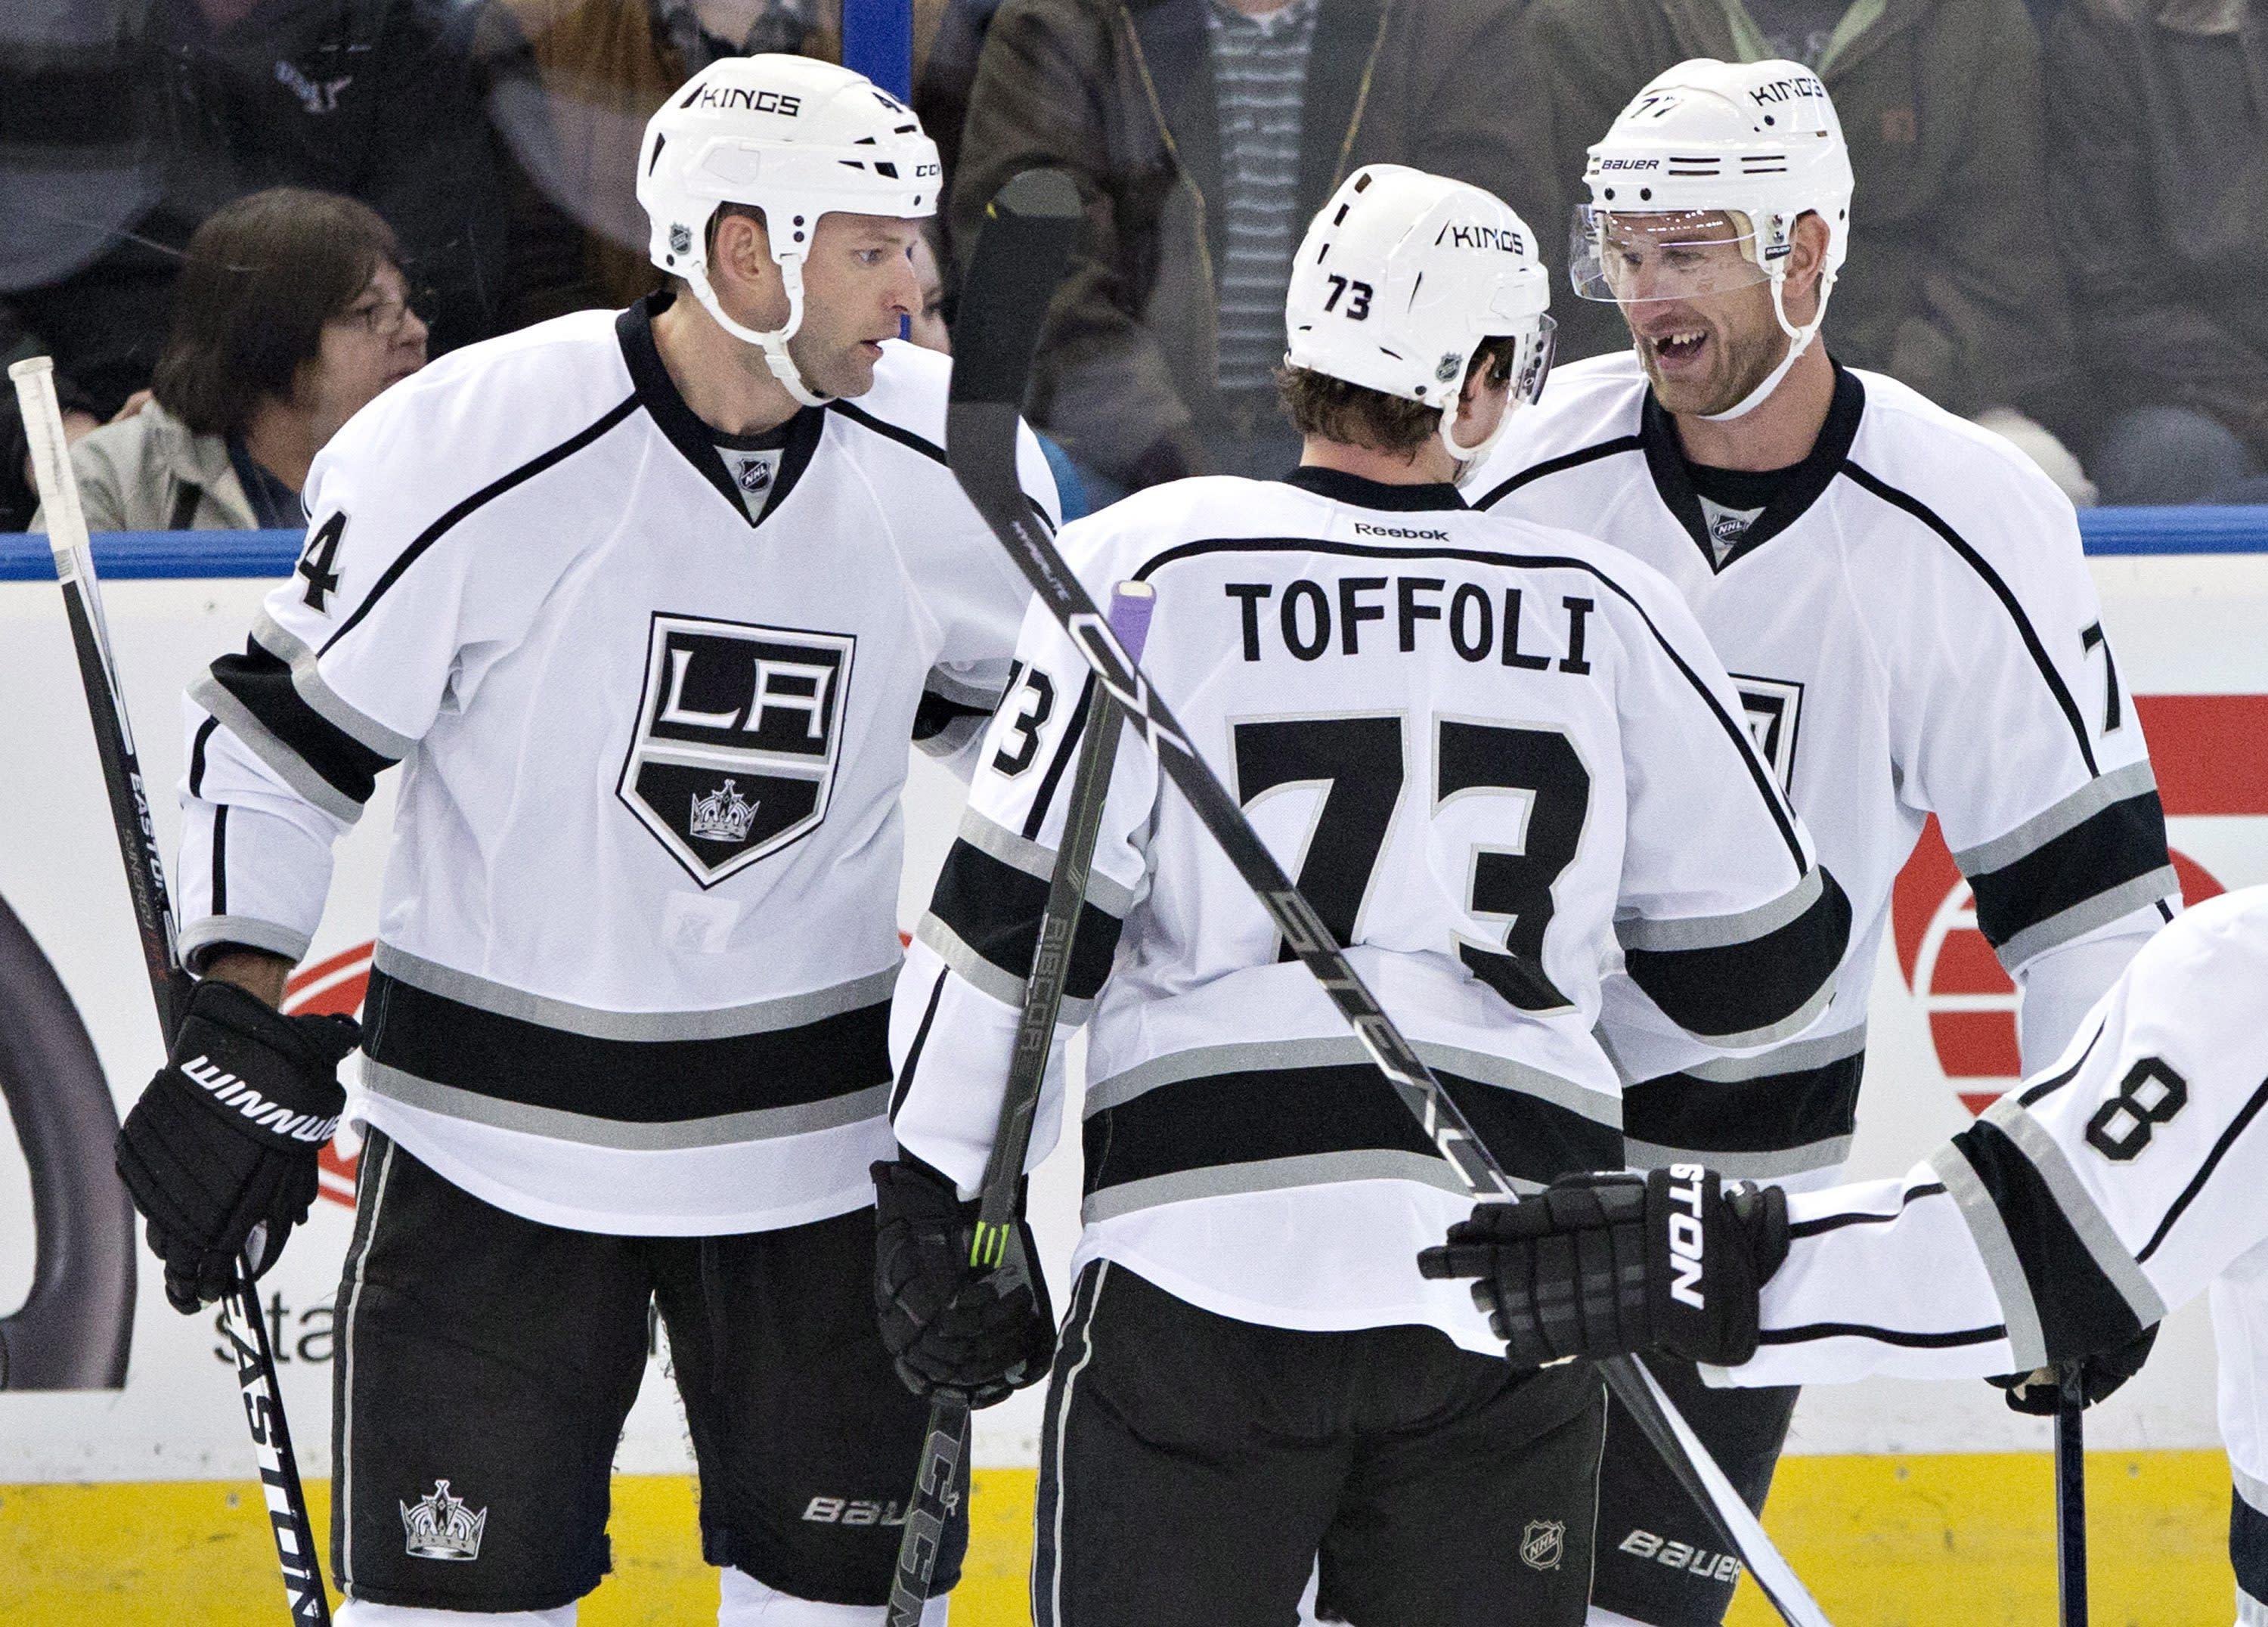 Kopitar, Lewis lead Kings past Oilers 5-2 to stop skid